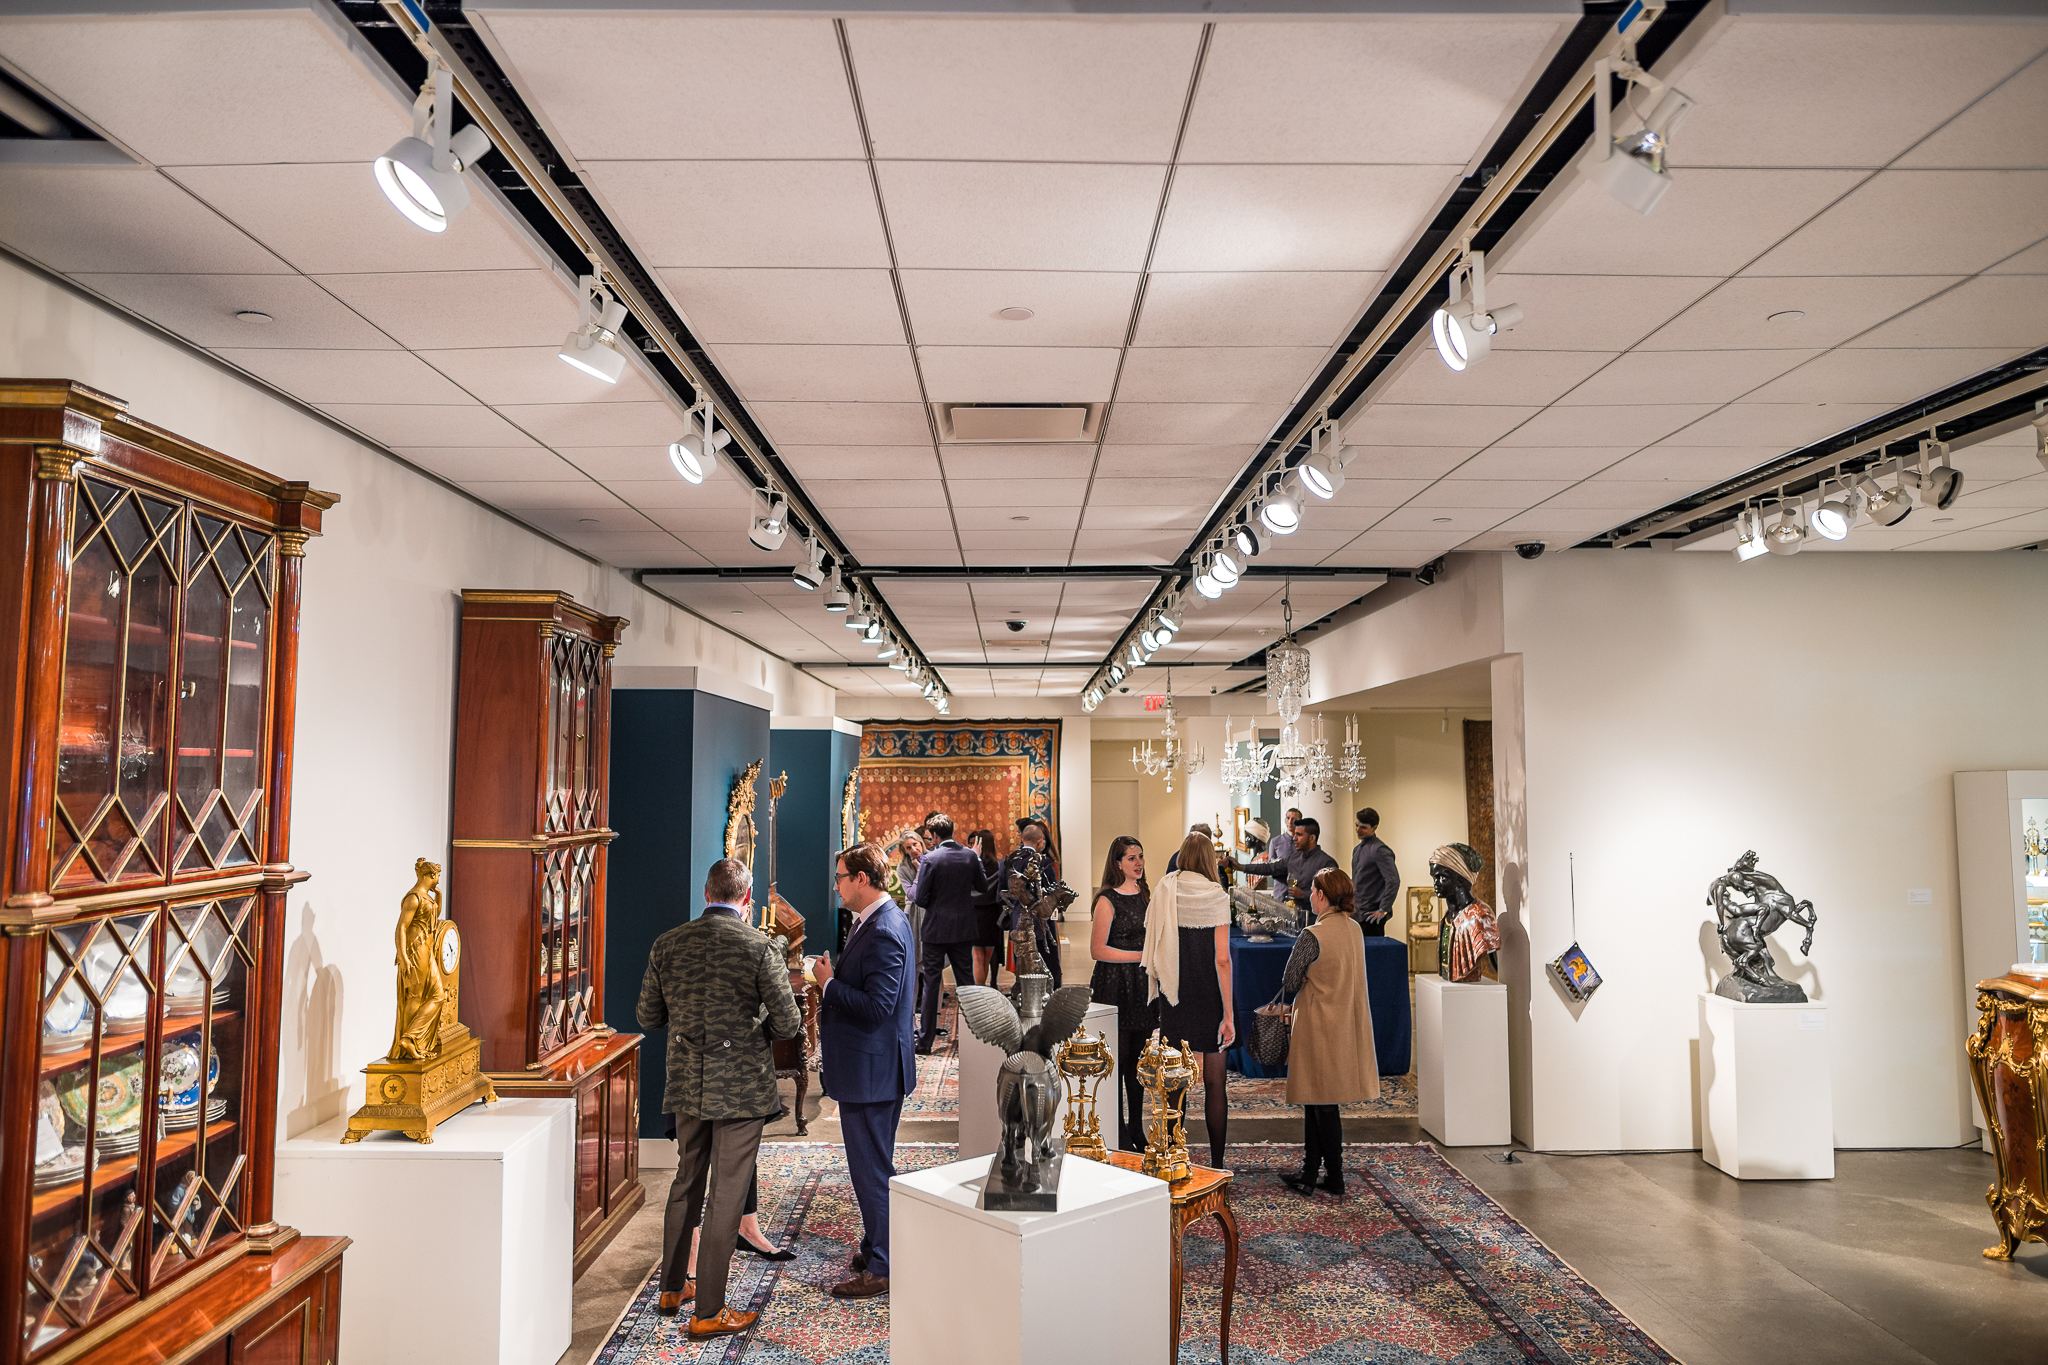 The Decorative Arts Sales exhibition